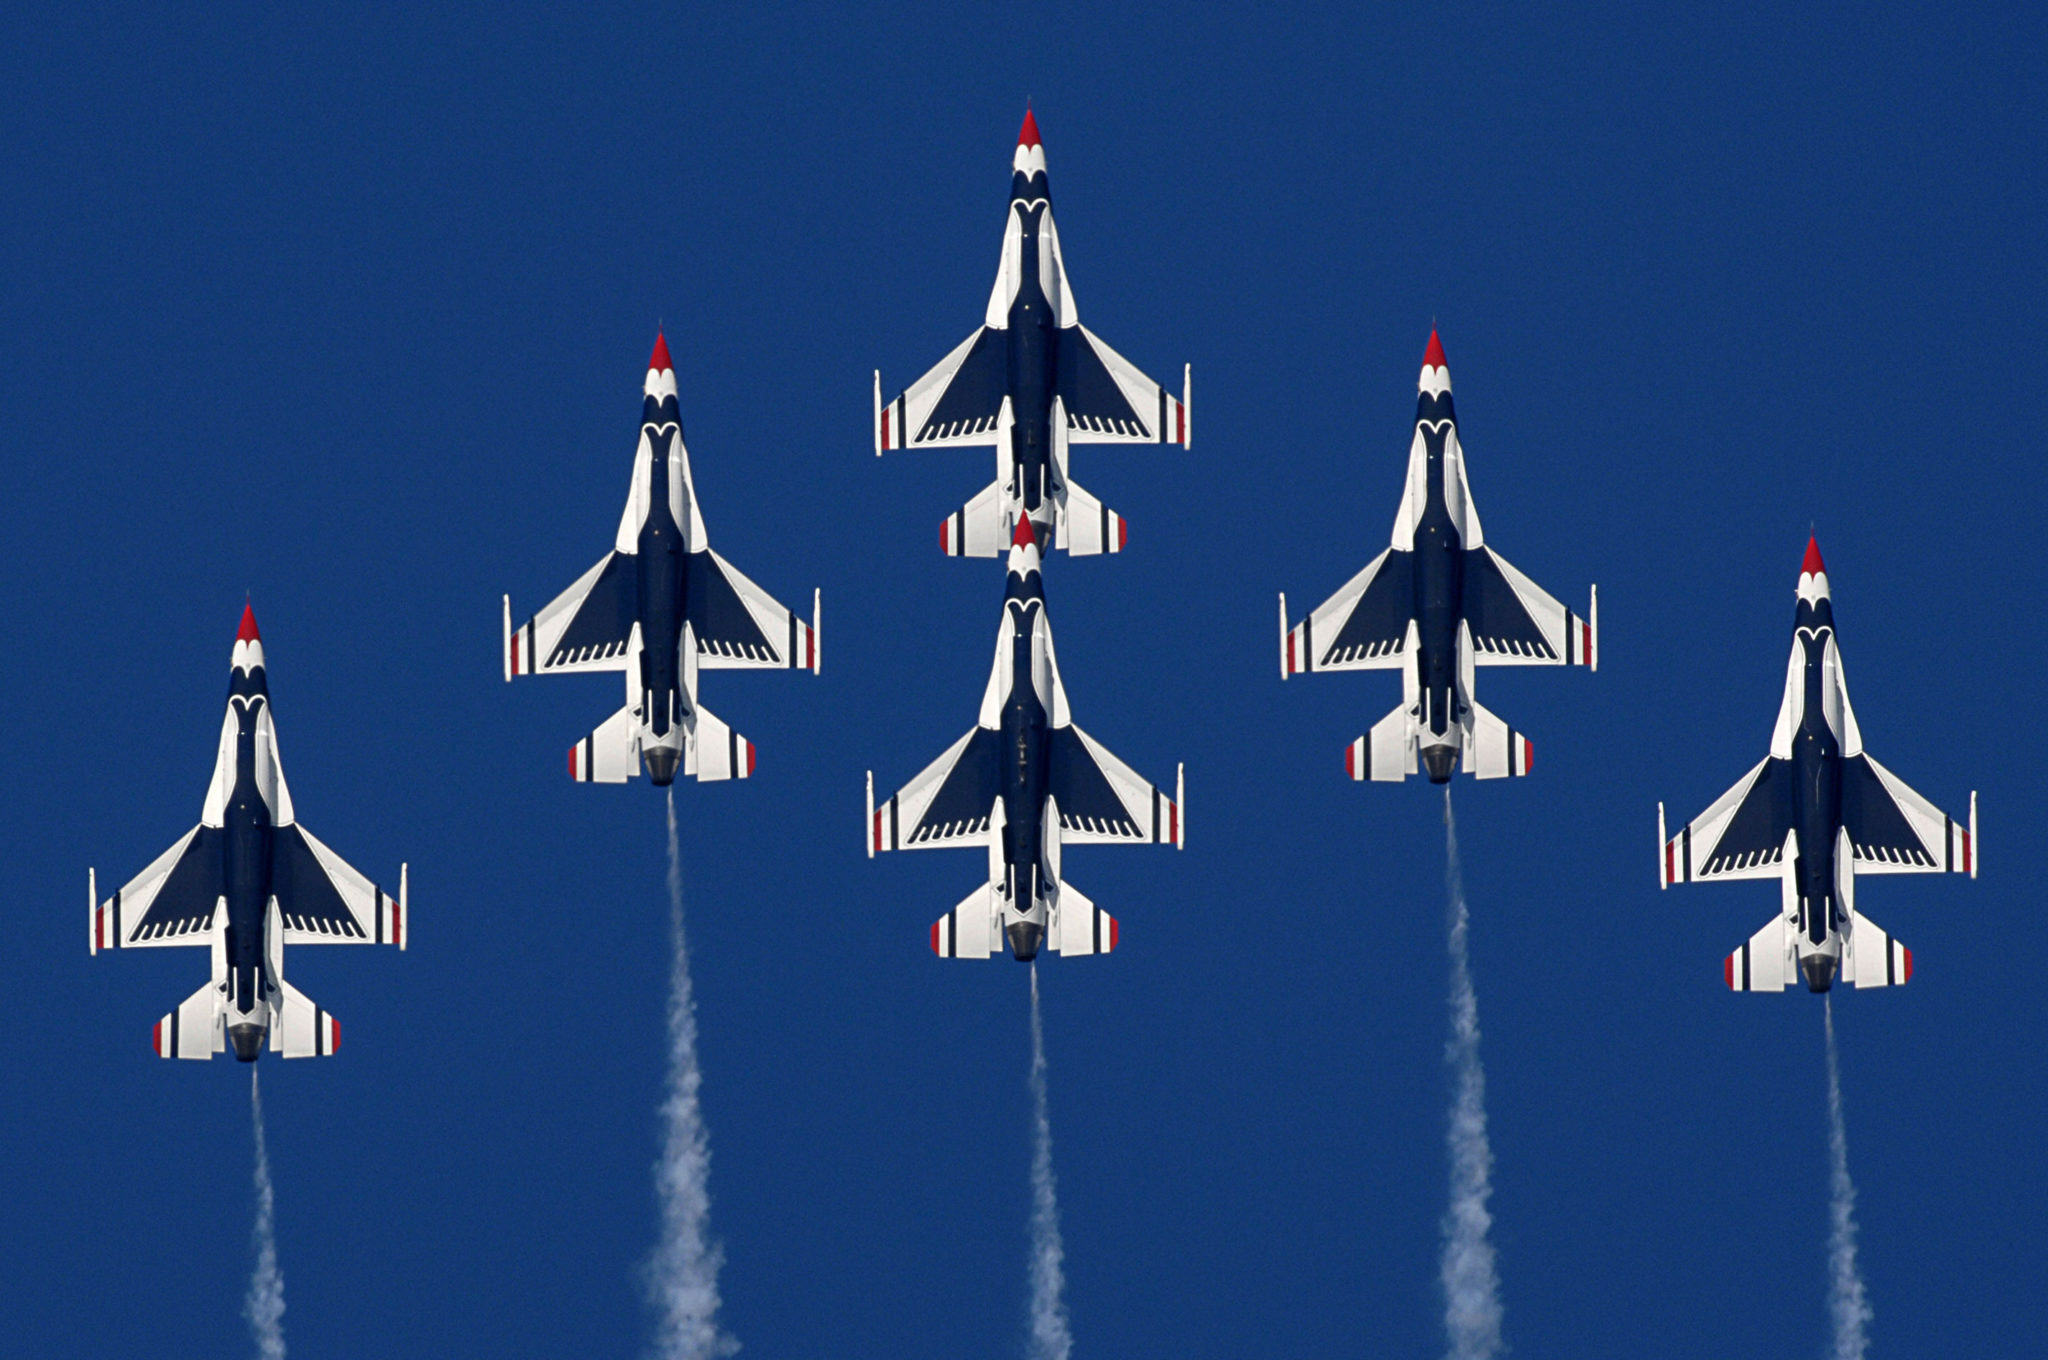 Air Force Thunderbirds cancelled due to sequestration